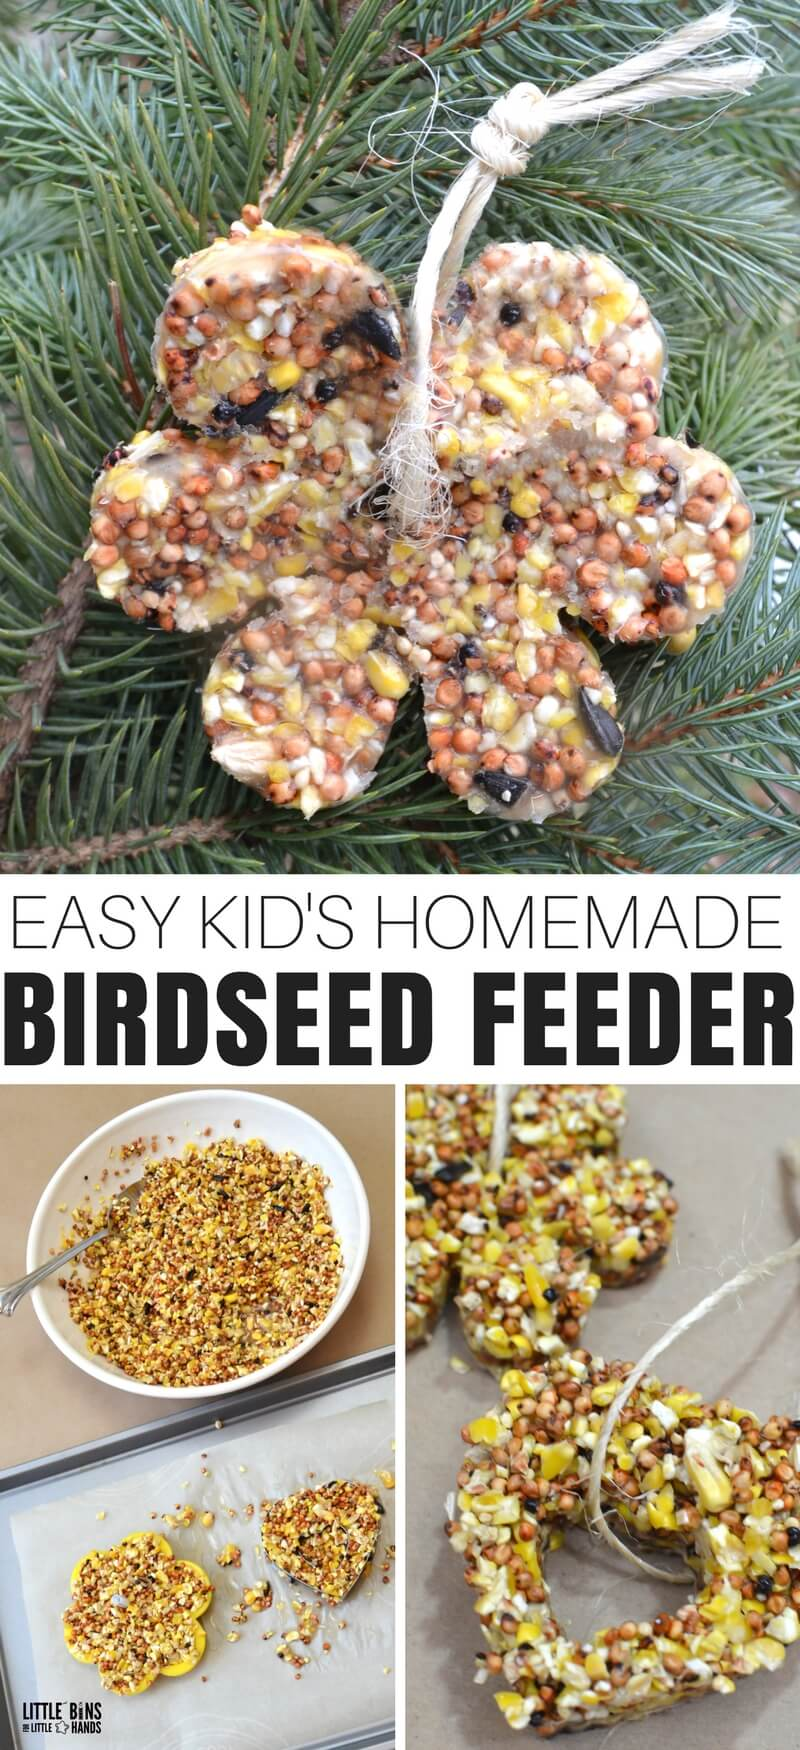 Earth Day, spring, summer, and even fall and winter (so basically anytime of the year) are perfect for learning how to make birdseed feeder ornaments with gelatin. Studying nature and natural life is an amazingly easy science activity to set up for kids, and learning how to care for and give back to nature is equally important. This is a fun bird watching activity to add to your kid's day!